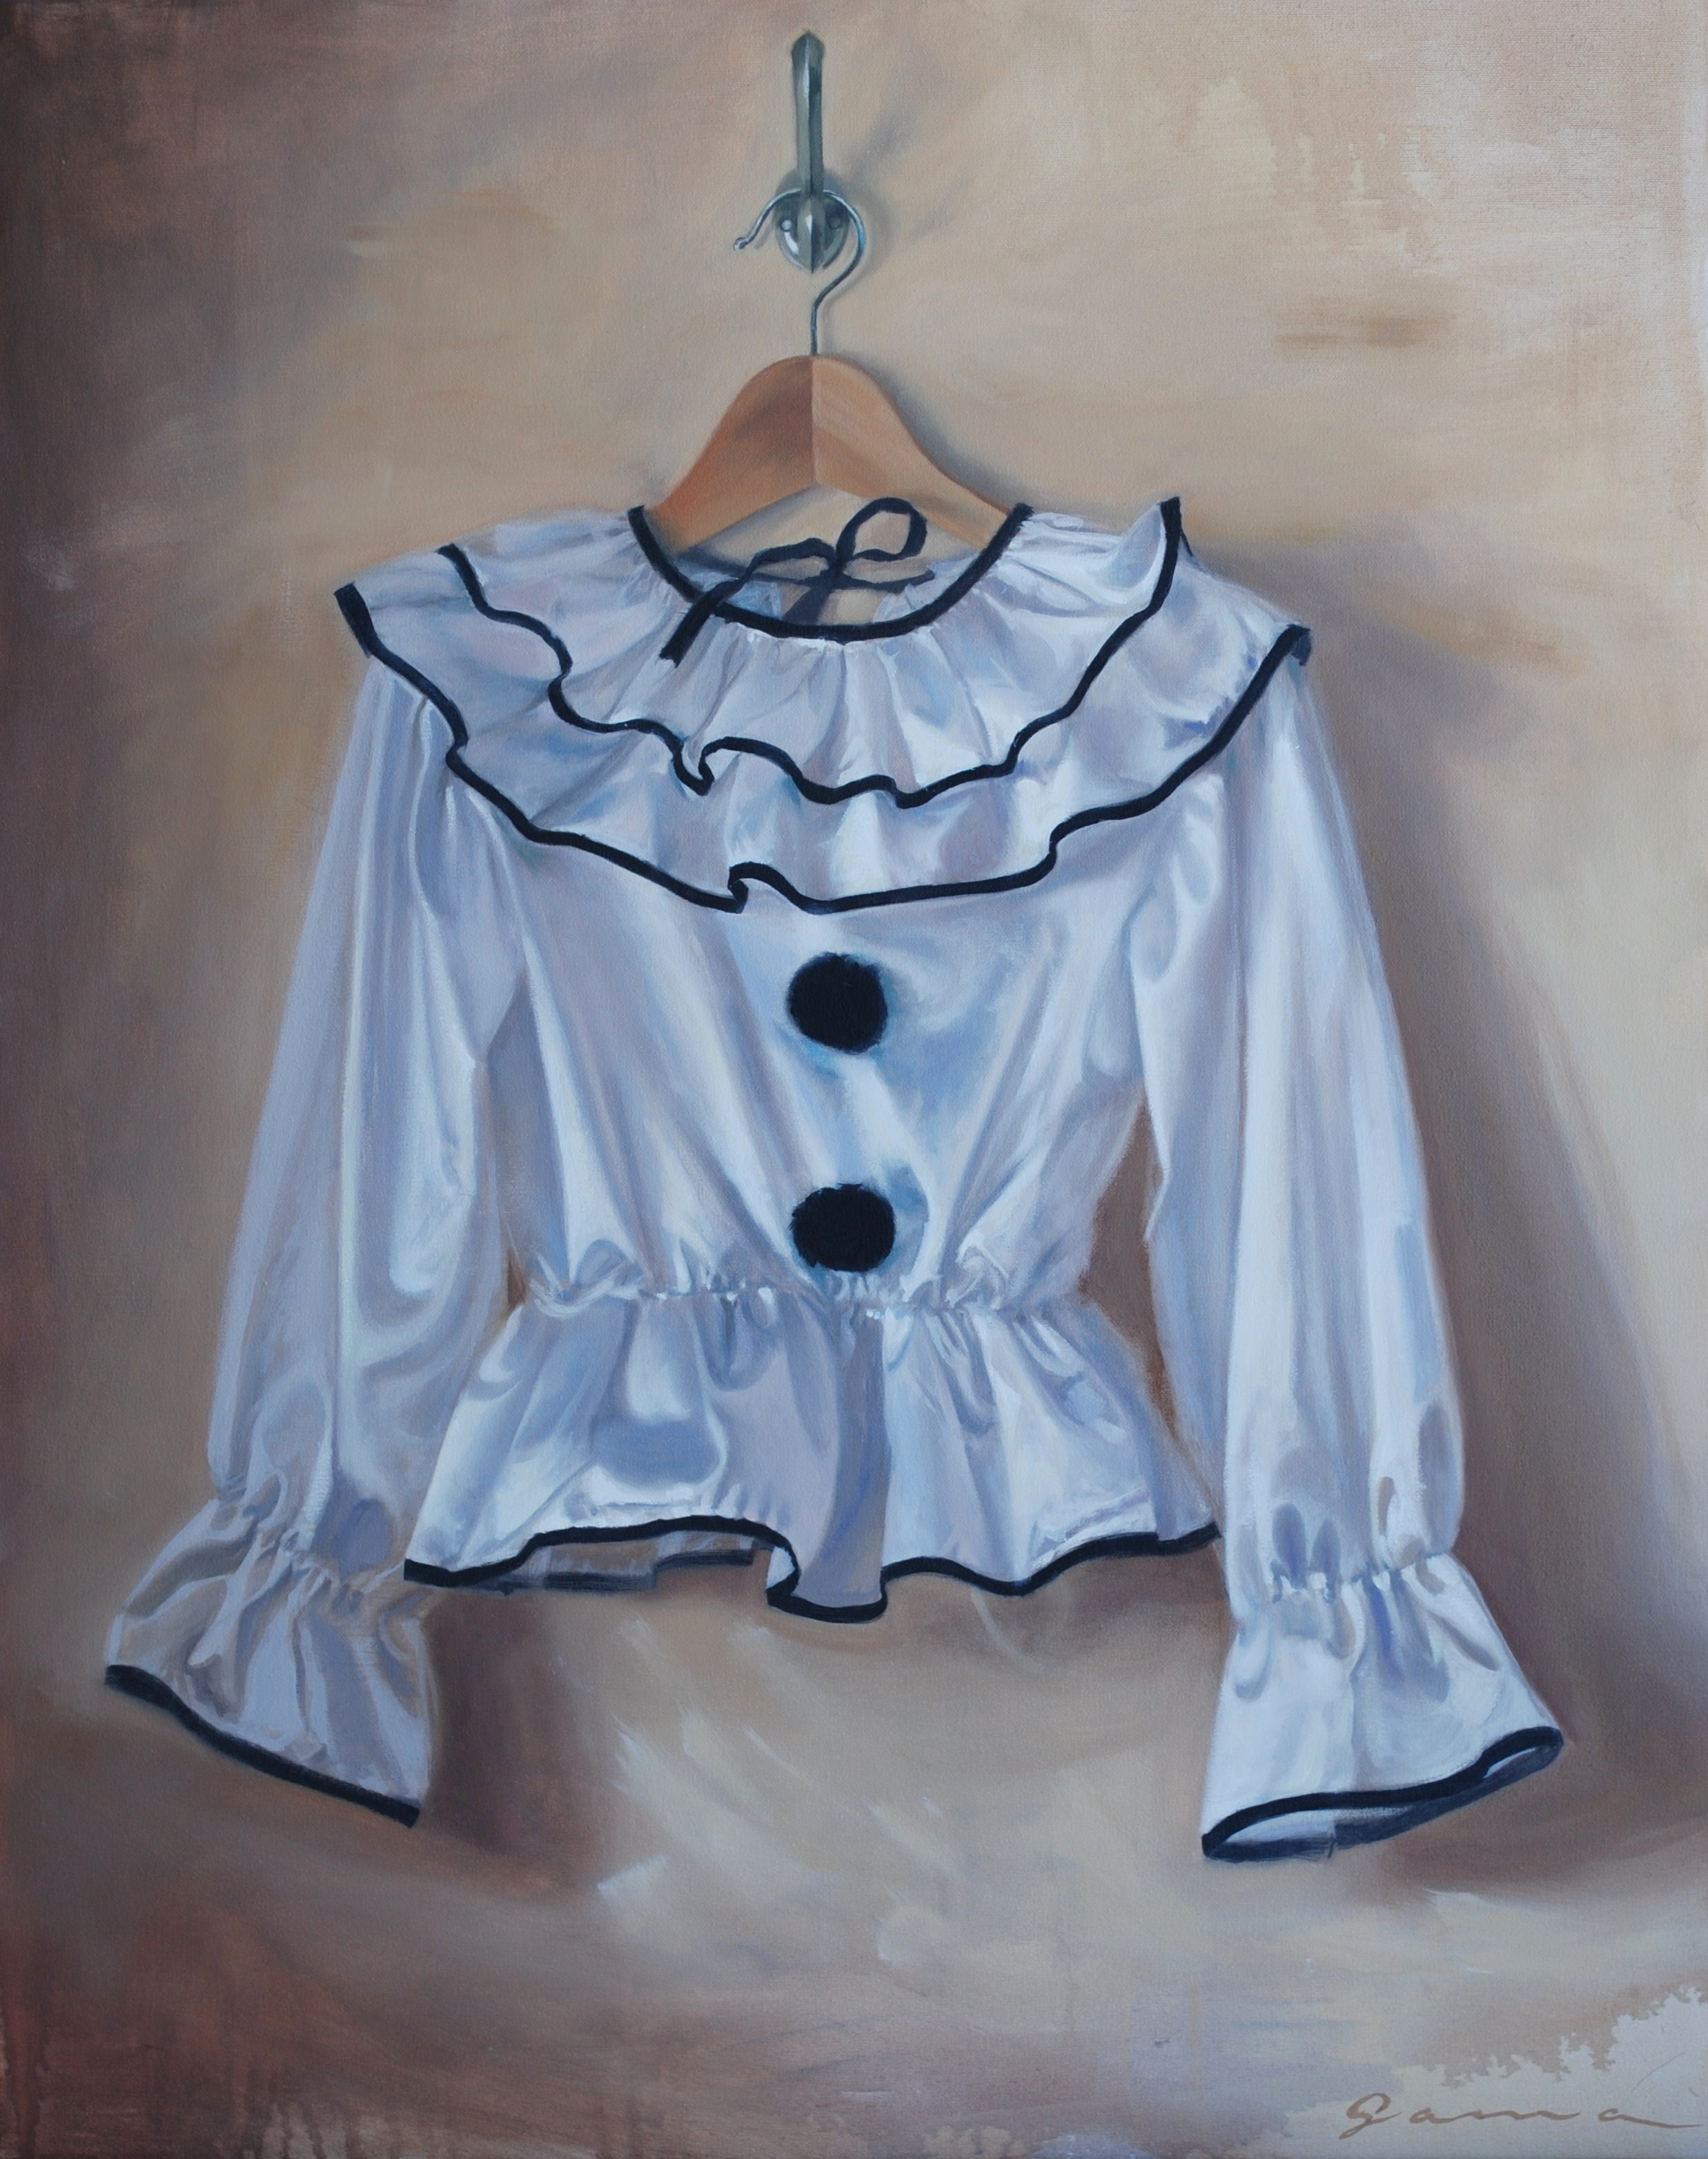 16+–+The+Costume,+Oil+on+canvas,++30+x+24+ins.